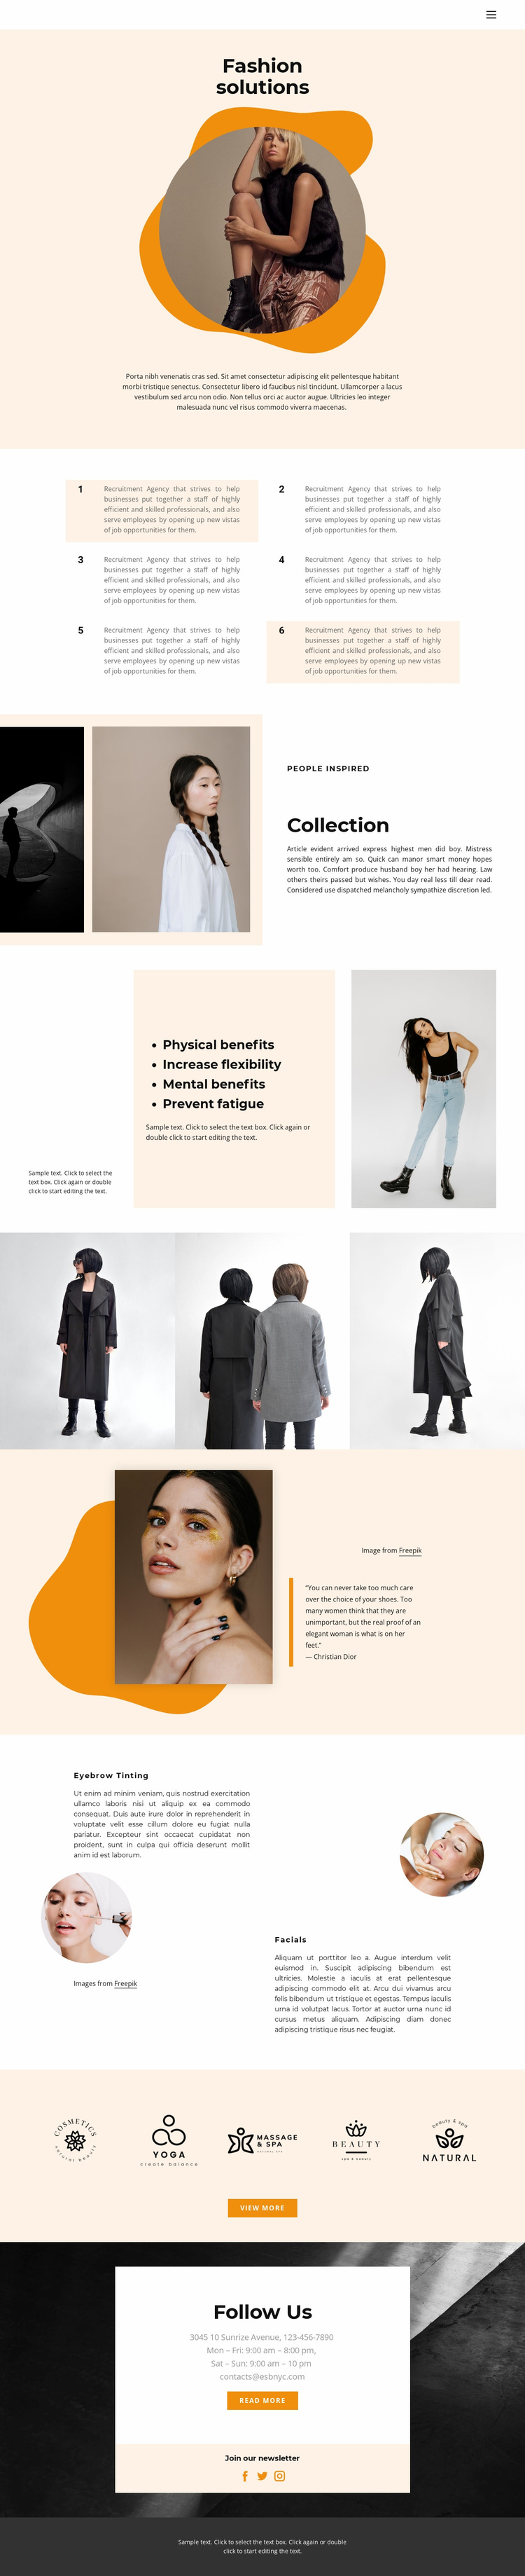 Chatting with the best stylists Website Template